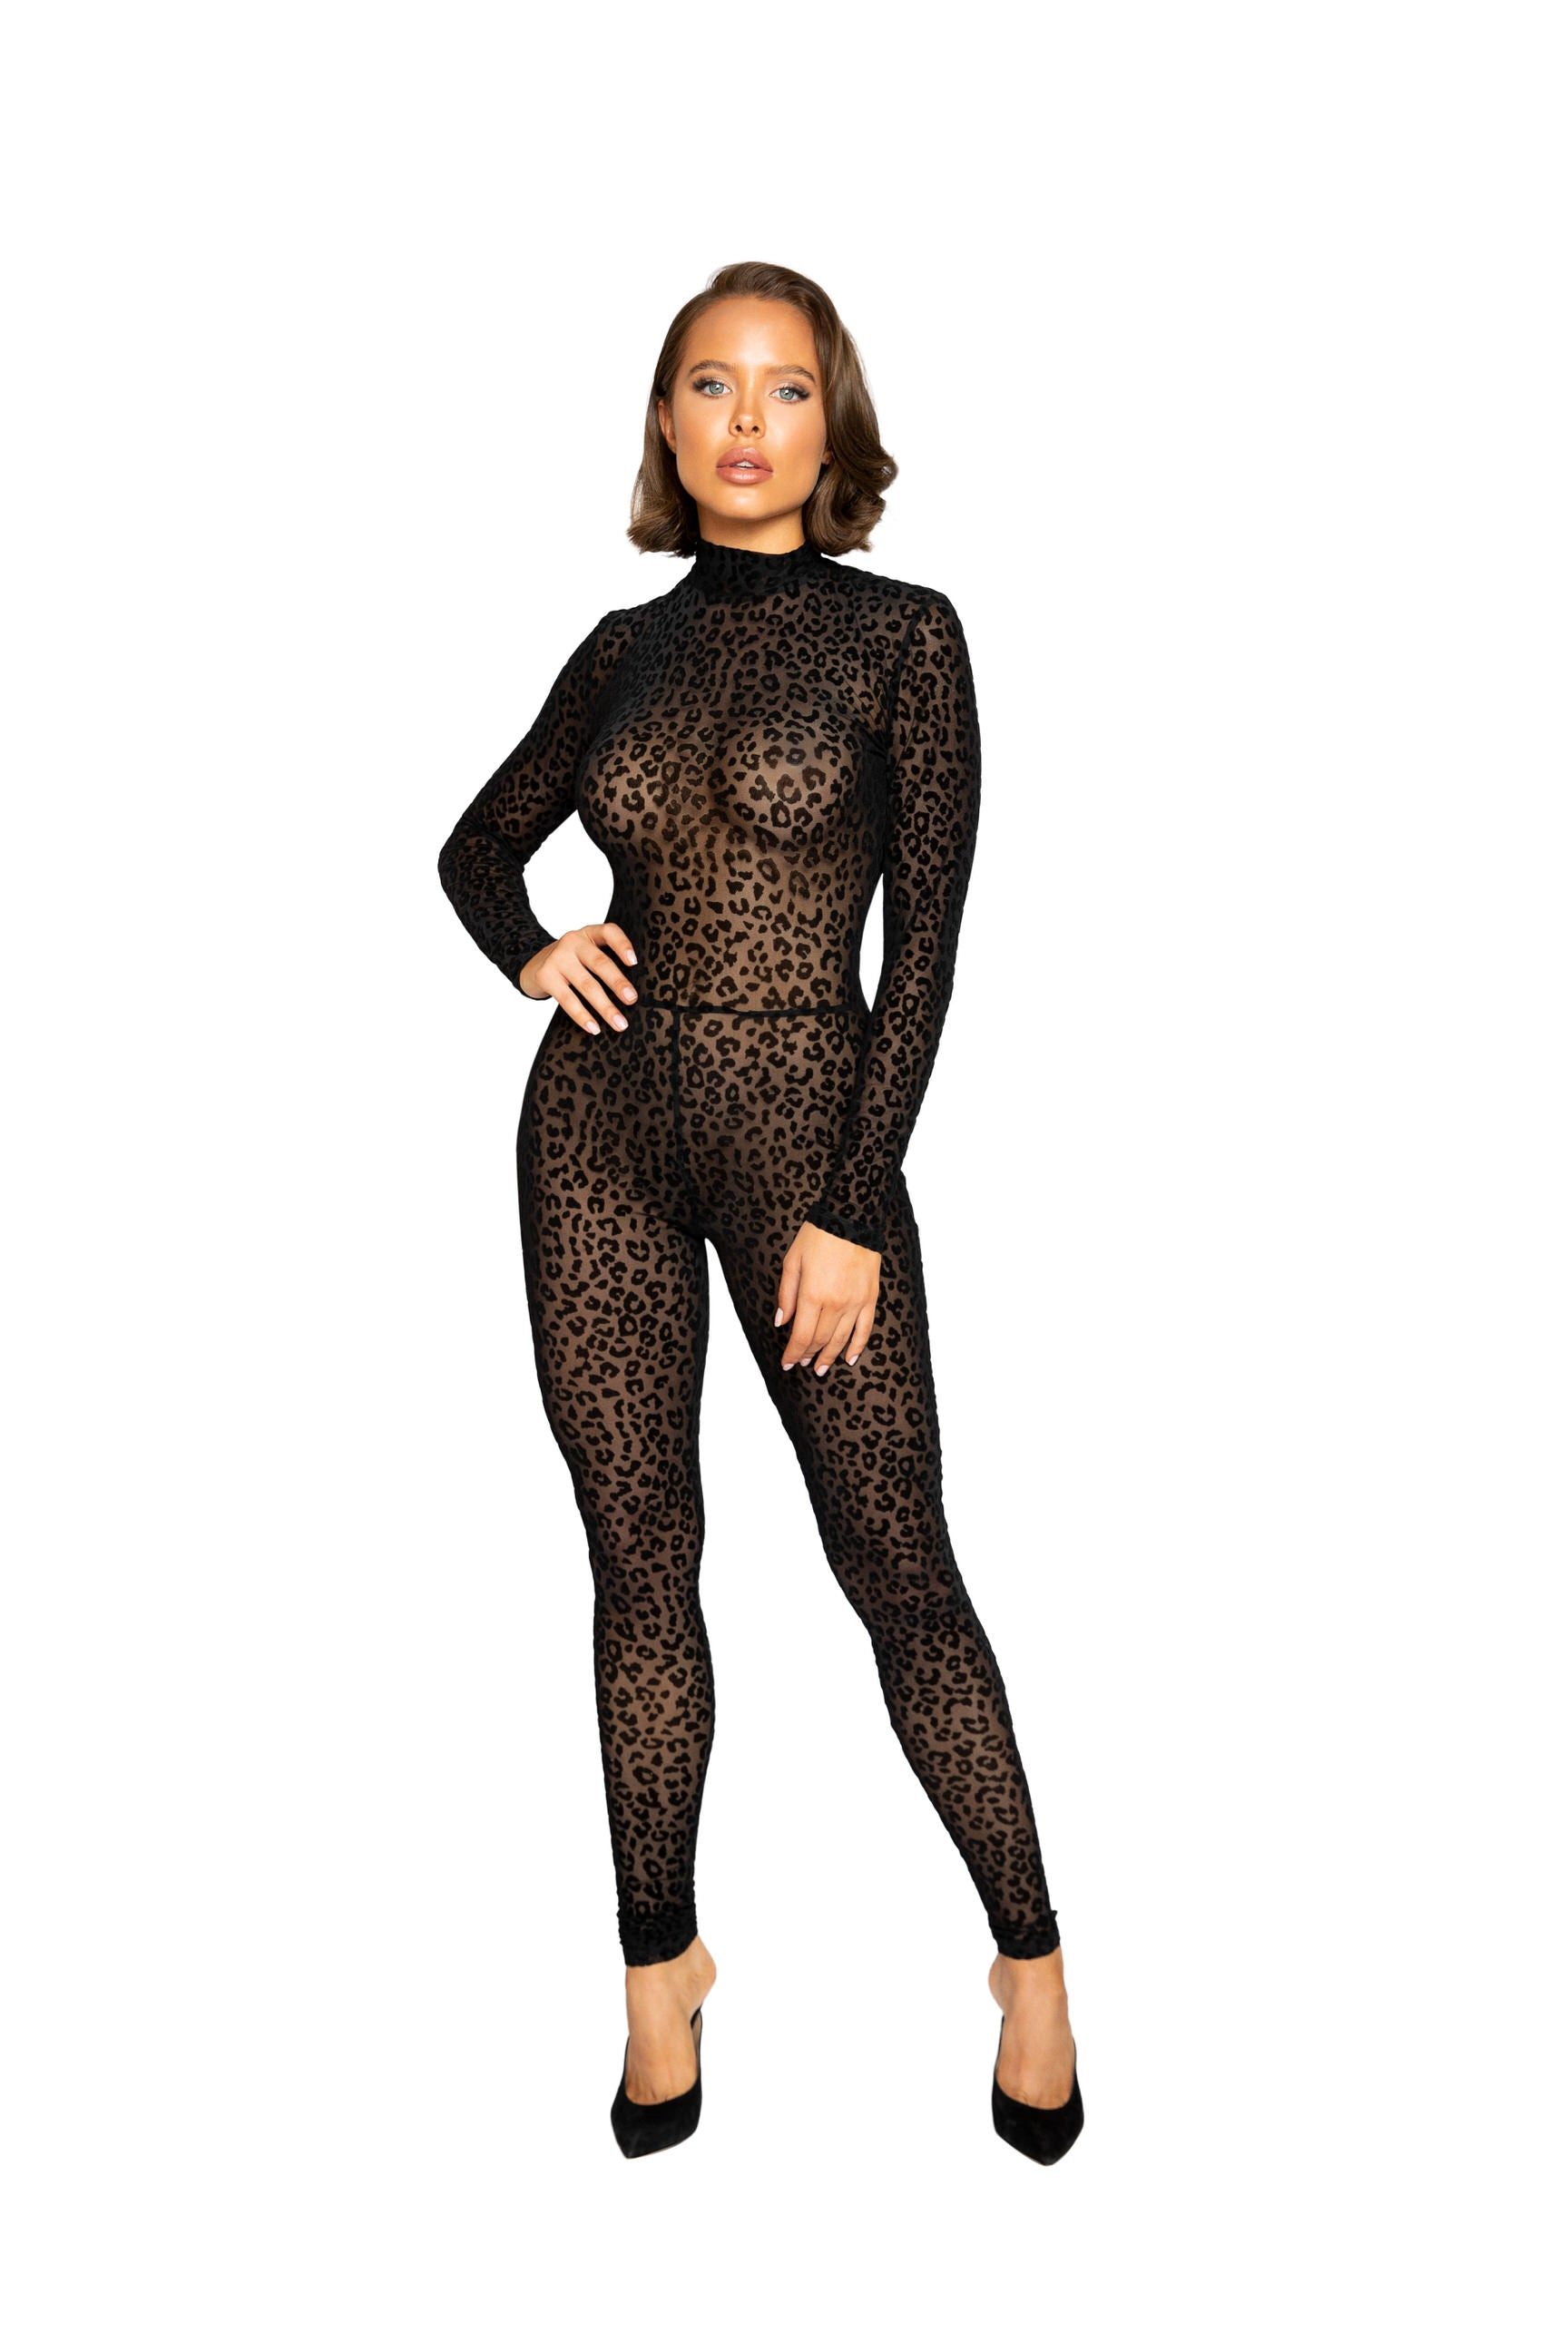 LI376 - Velvet Leopard Bodysuit ${description} | Roma Costume and Roma Confidential wholesale manufacturer of Women Apparel bulk world wide wholesale and world wide drop ship services for Adult Halloween Costumes, Sexy and Elegant Lingerie, Rave Clothing, Club wear, and Christmas Costumes. Lingerie, Roma Costume, Inc., Roma Costume, Roma Confidential, Wholesale clothing, drop ship, drop ship service, Wholesale Lingerie, Wholesale Adult Halloween Costumes, Rave Clothing, EDM Clothing, Festival Wear, Christmas Costumes, Clubwear, Club wear.